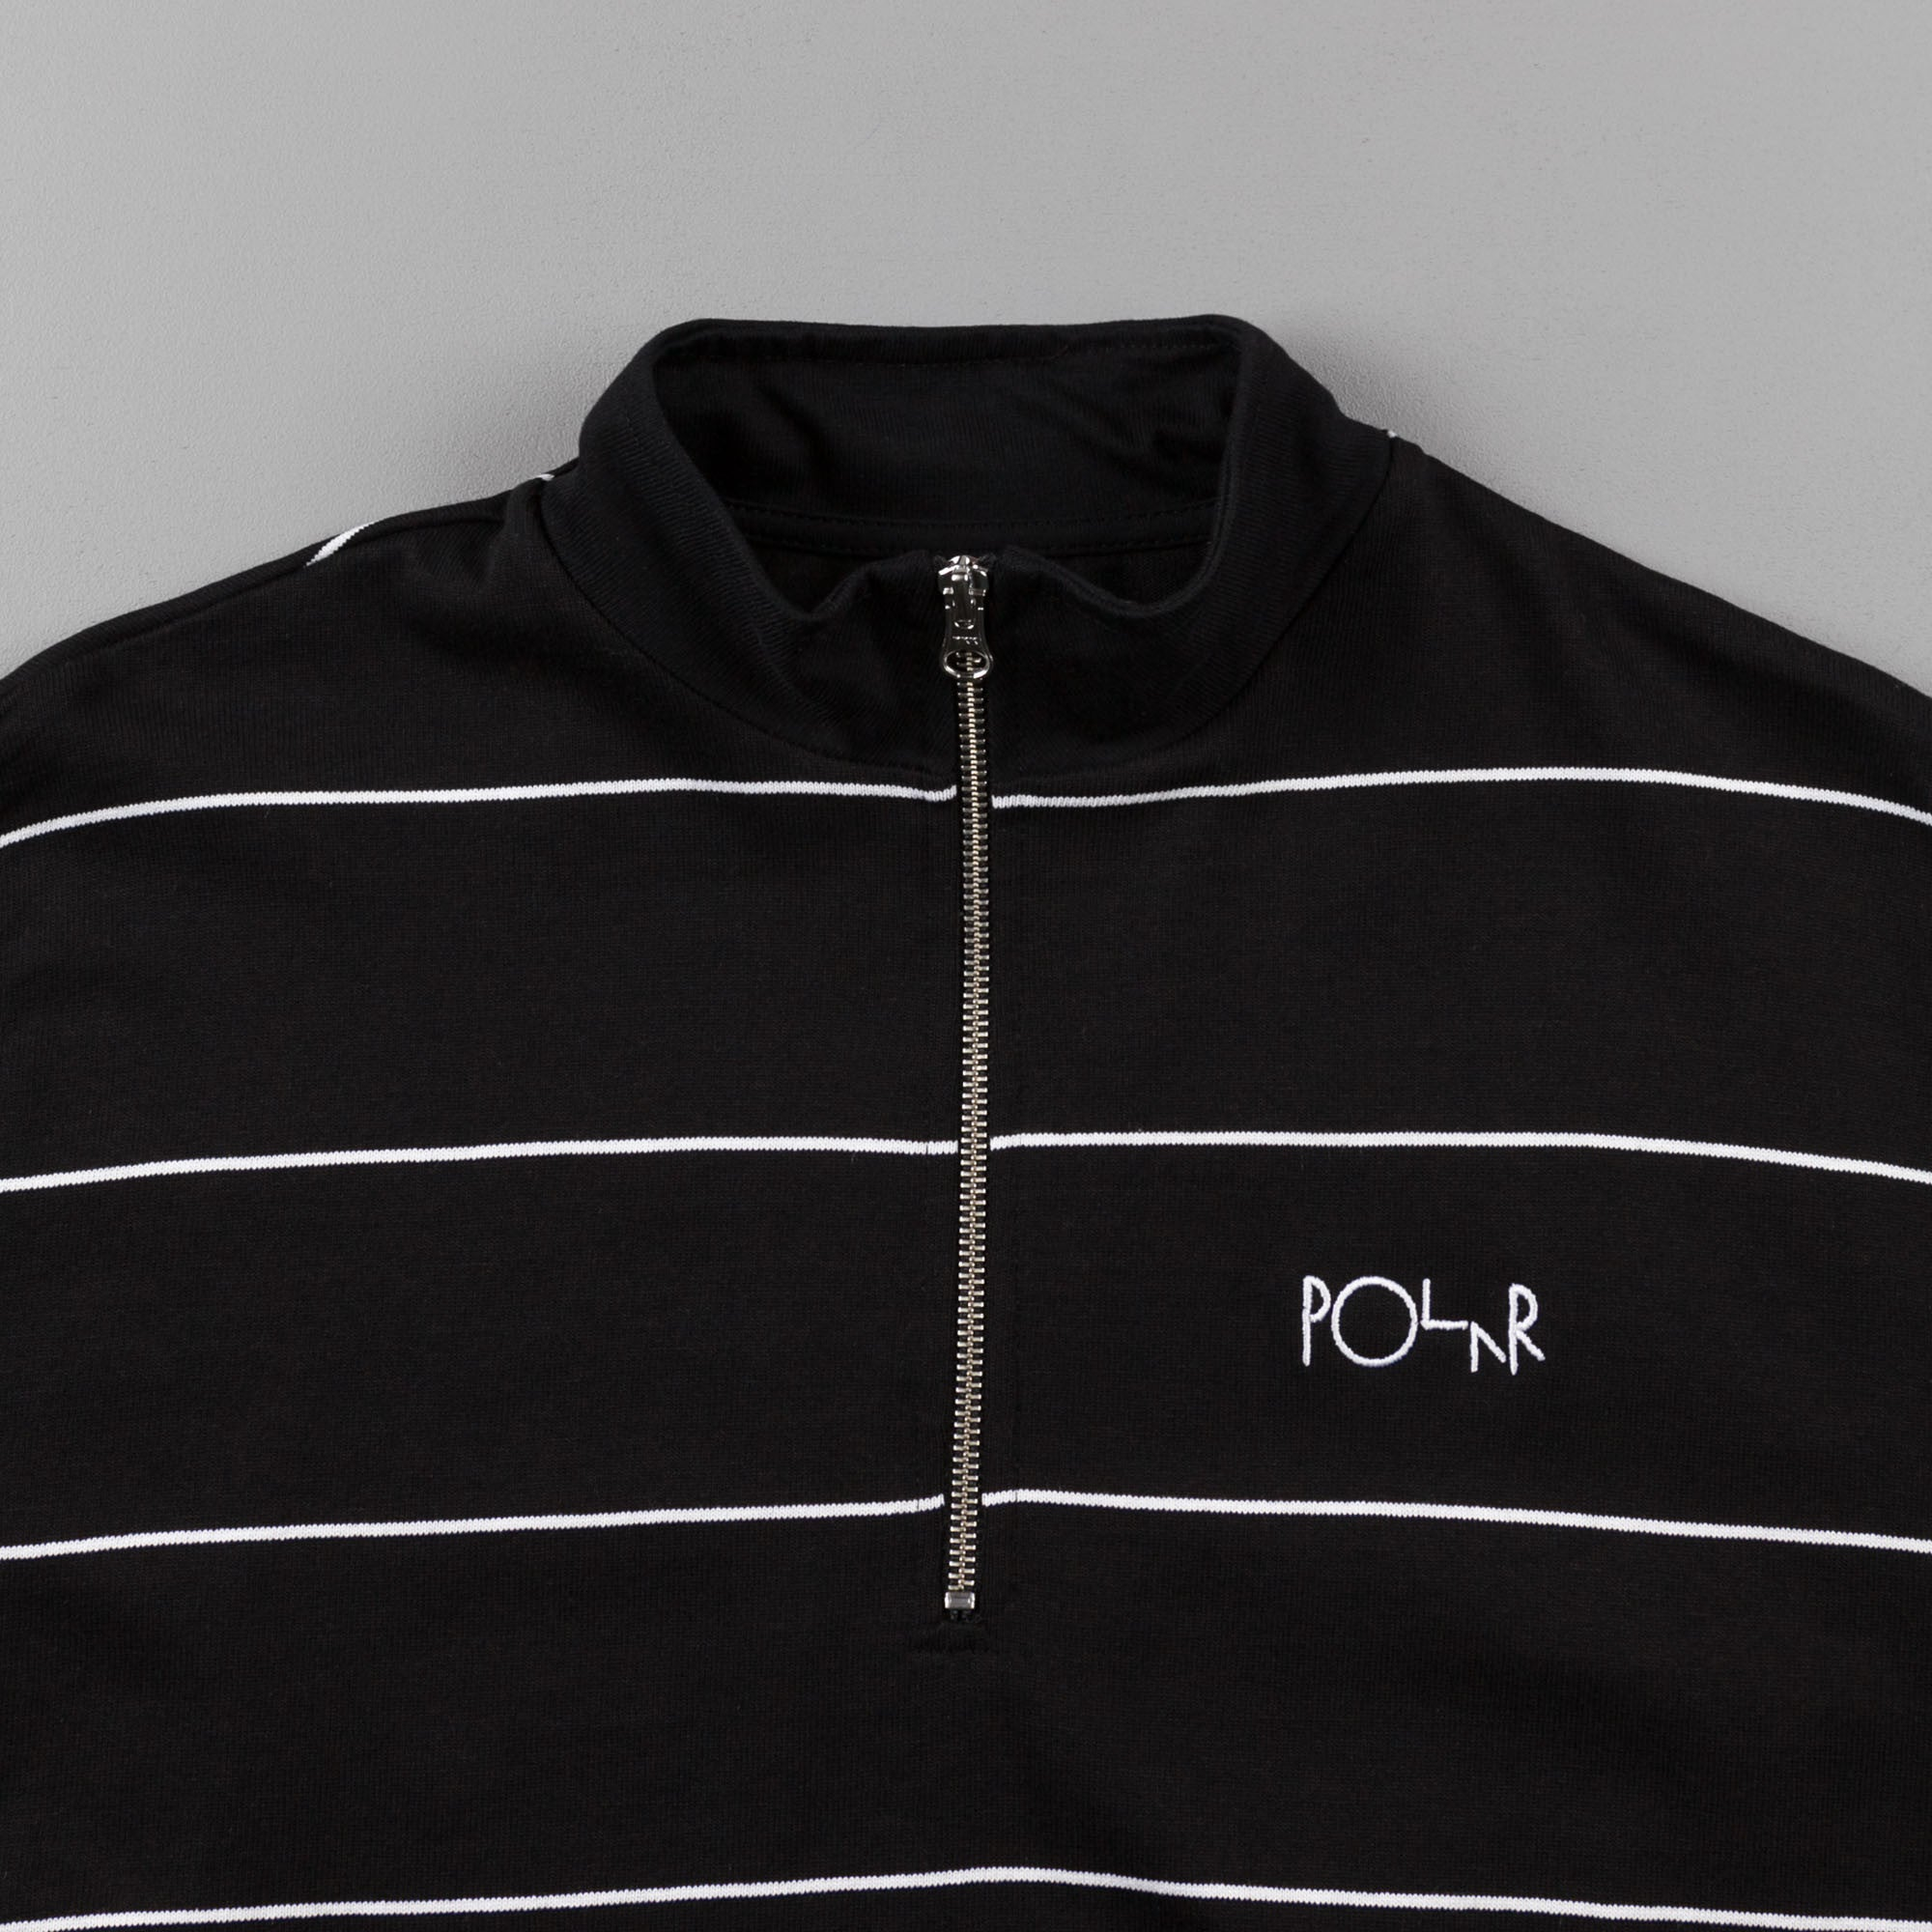 Polar Striped Zip Neck Sweatshirt - Black